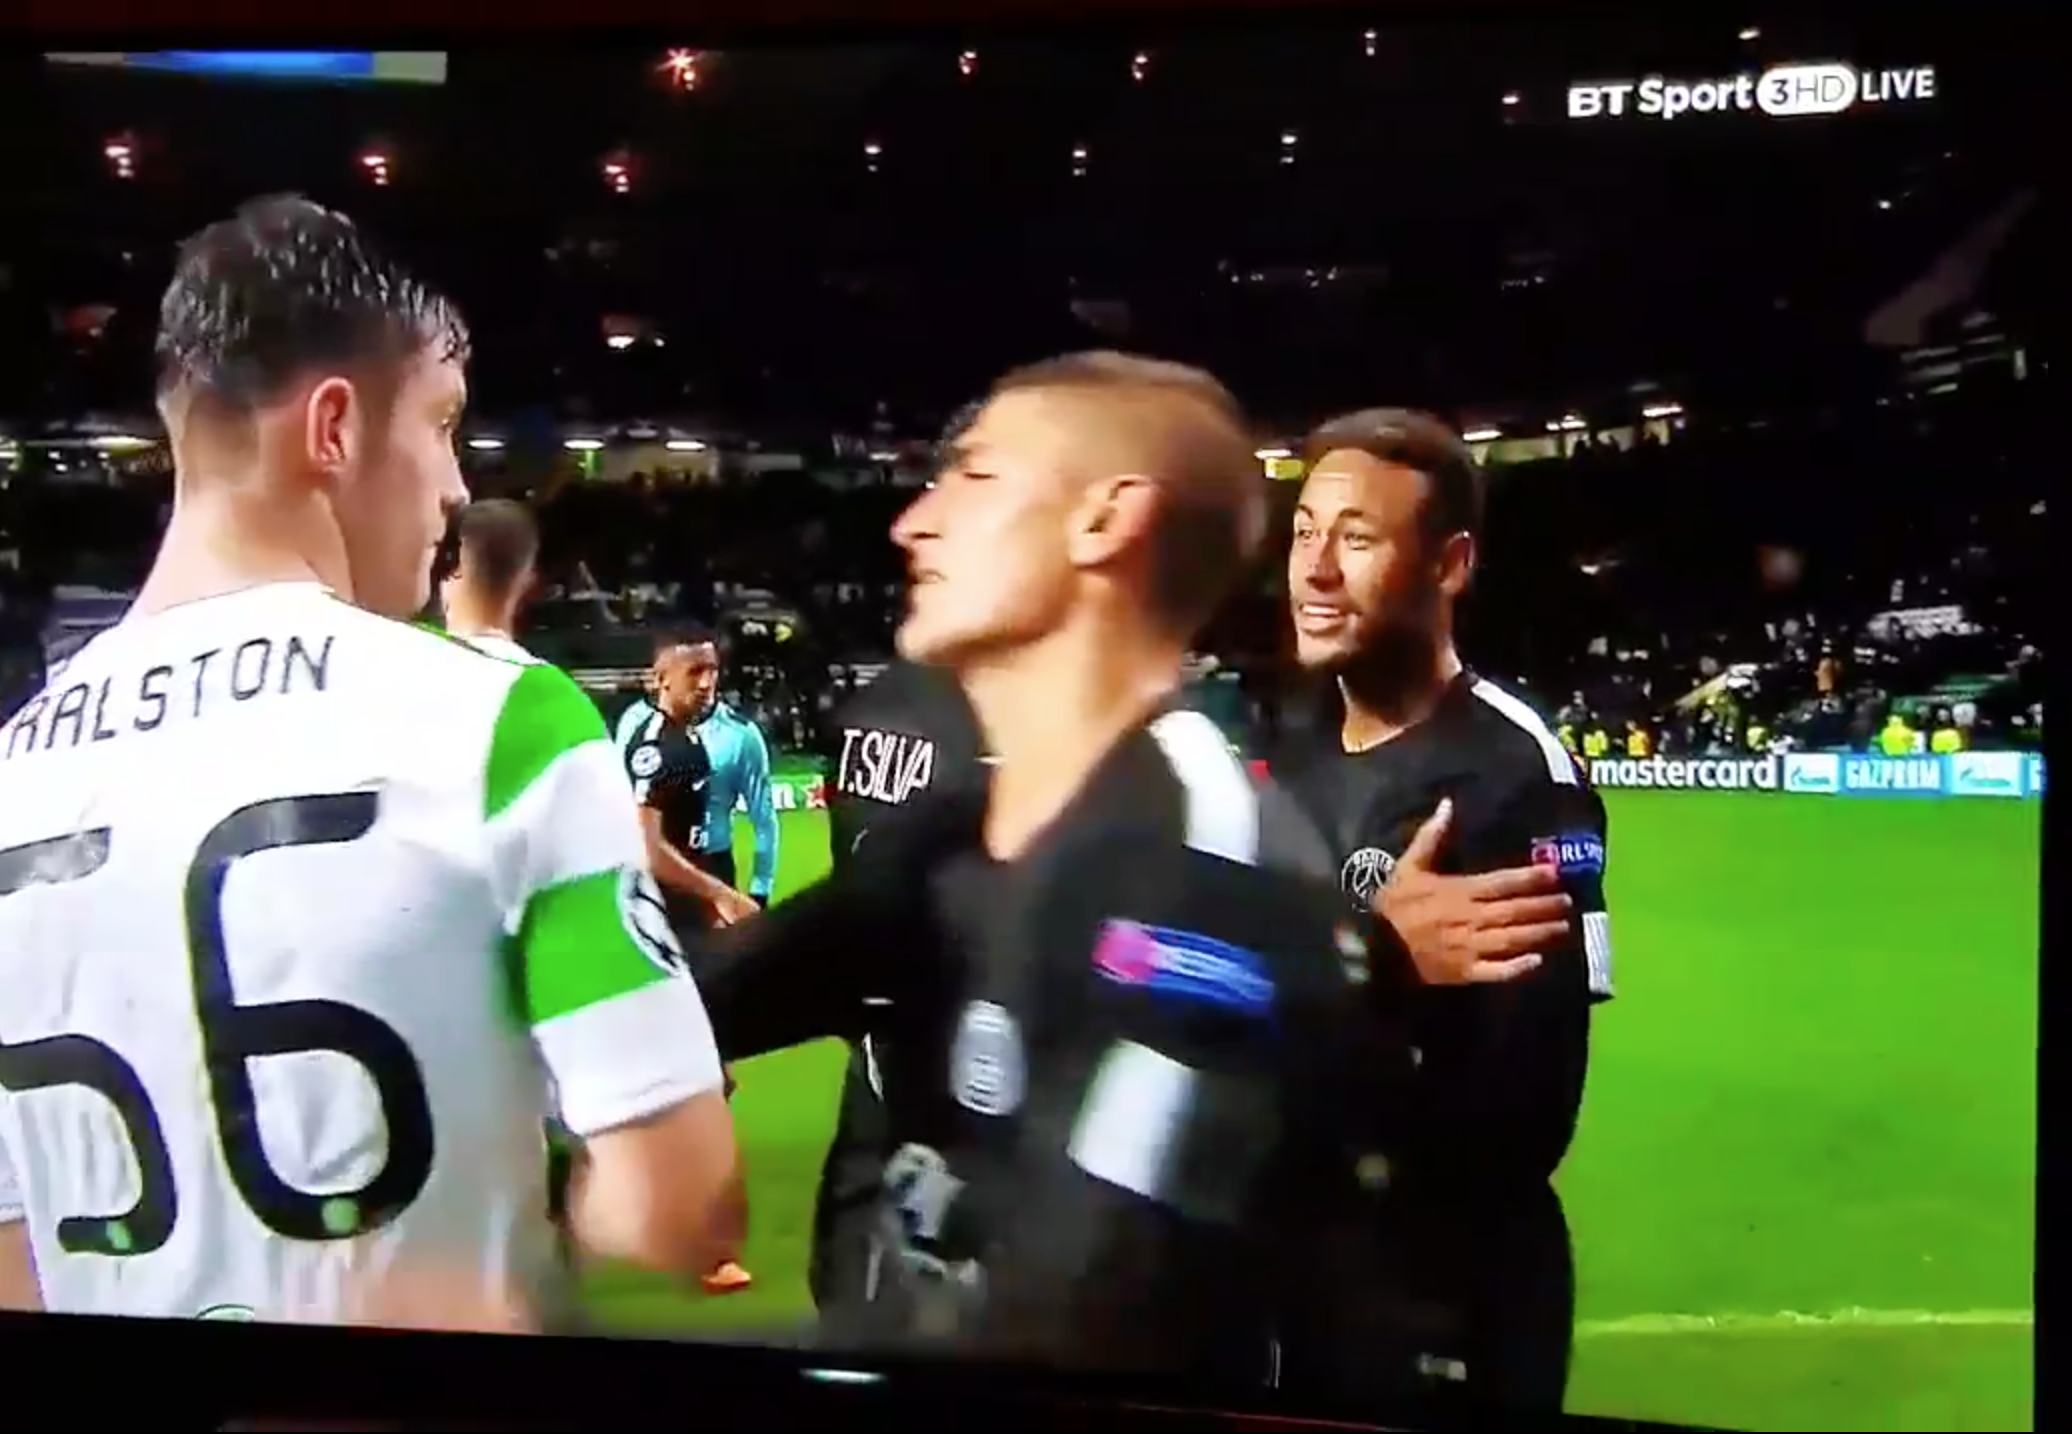 WATCH: Things Kicking Off Between Neymar And Ralston After The Game